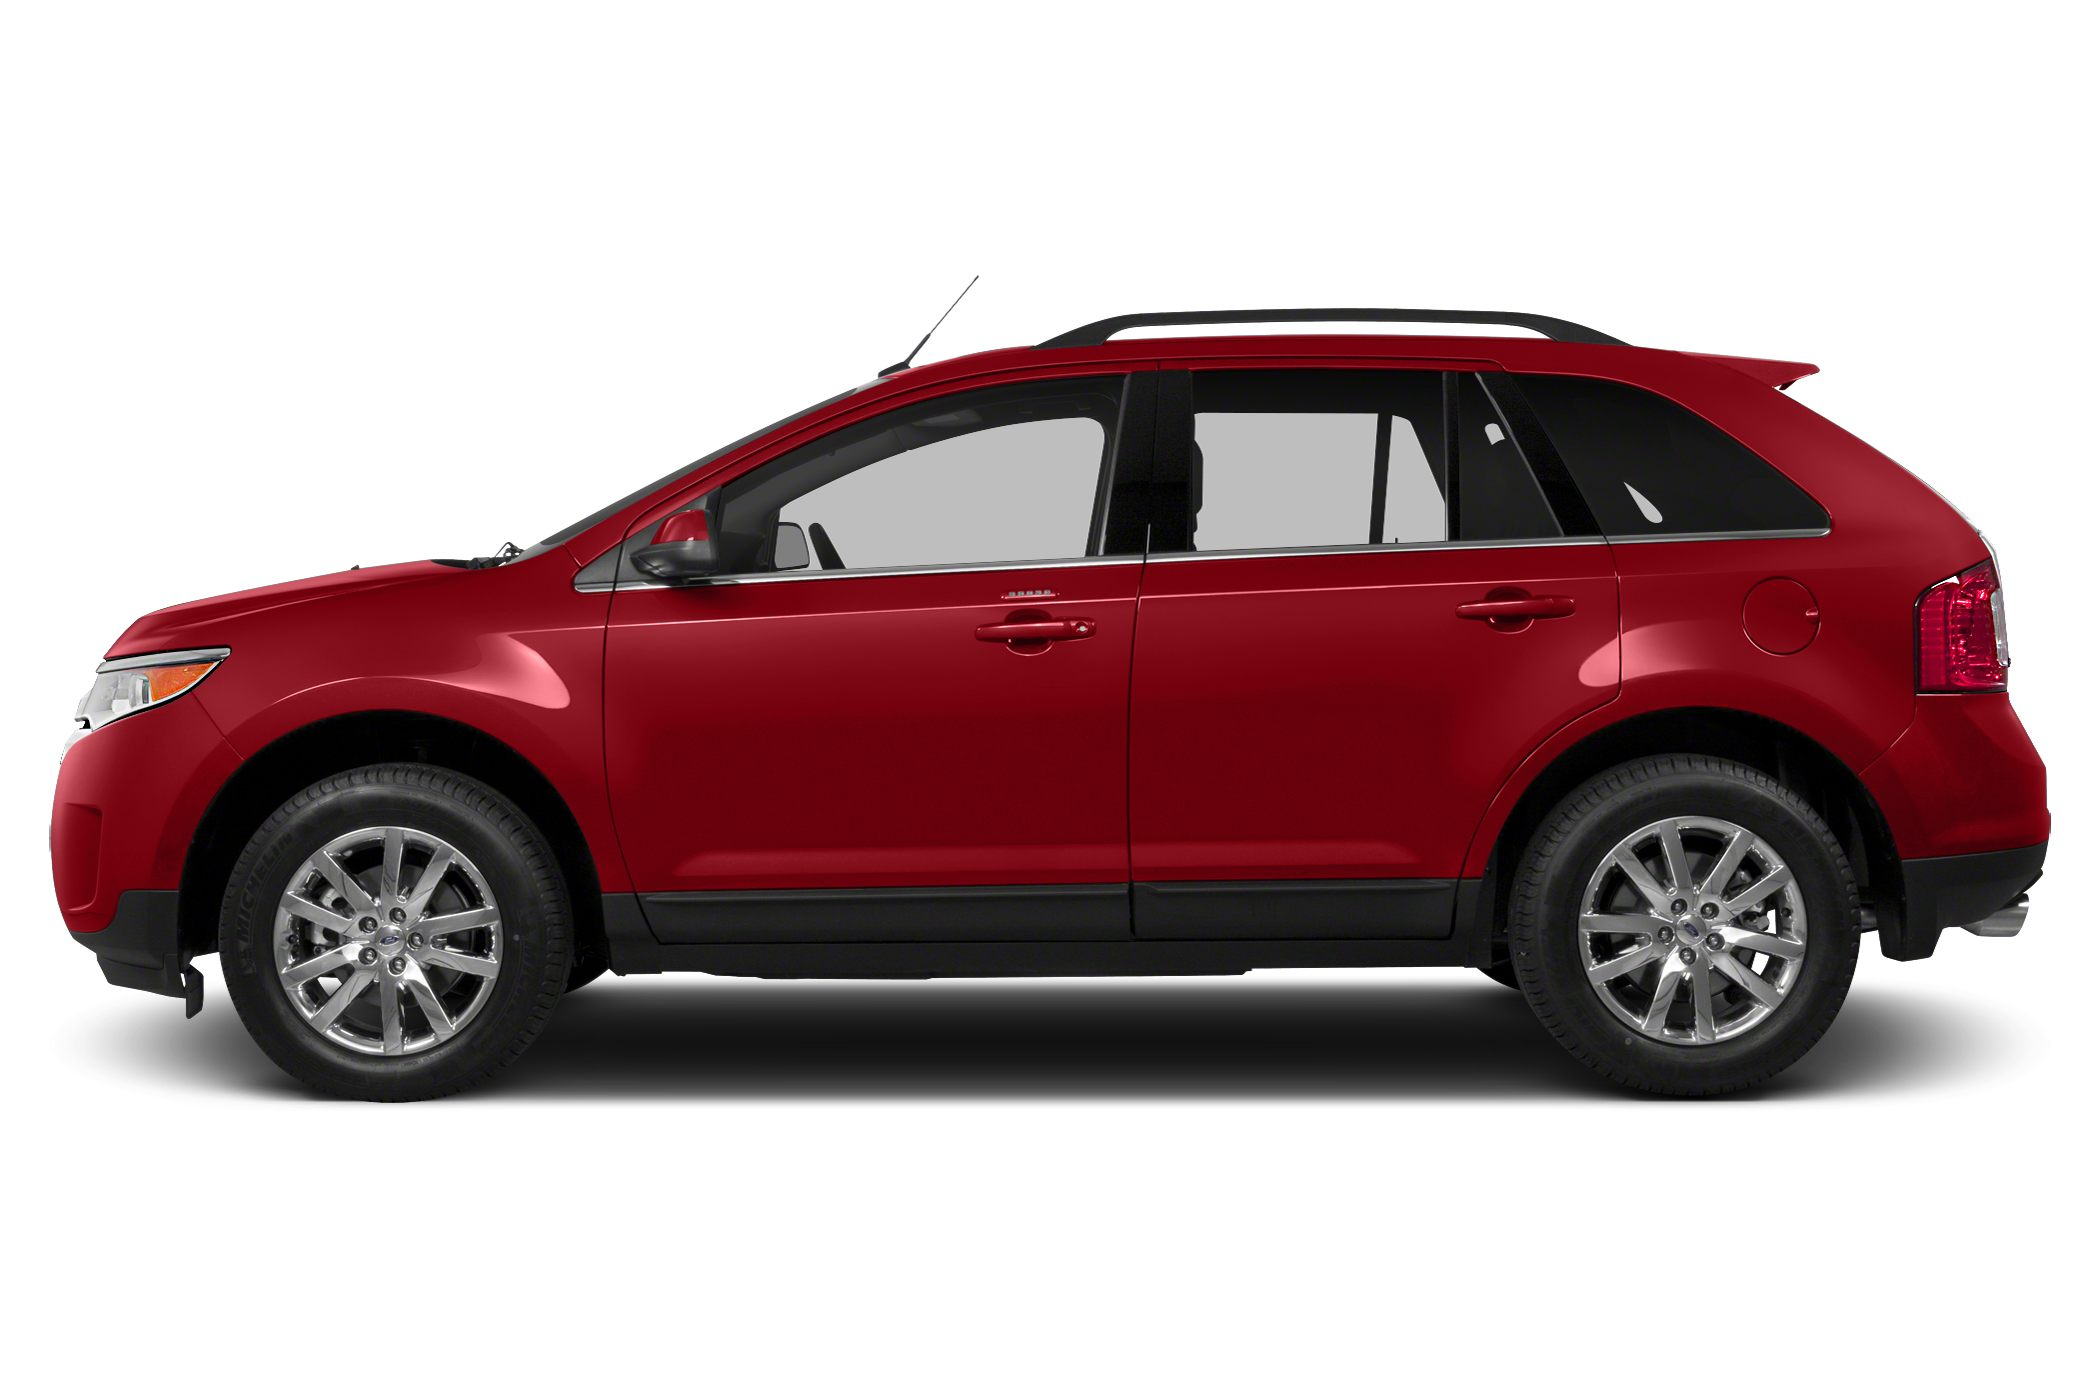 Red Ford Edge Png image #28029